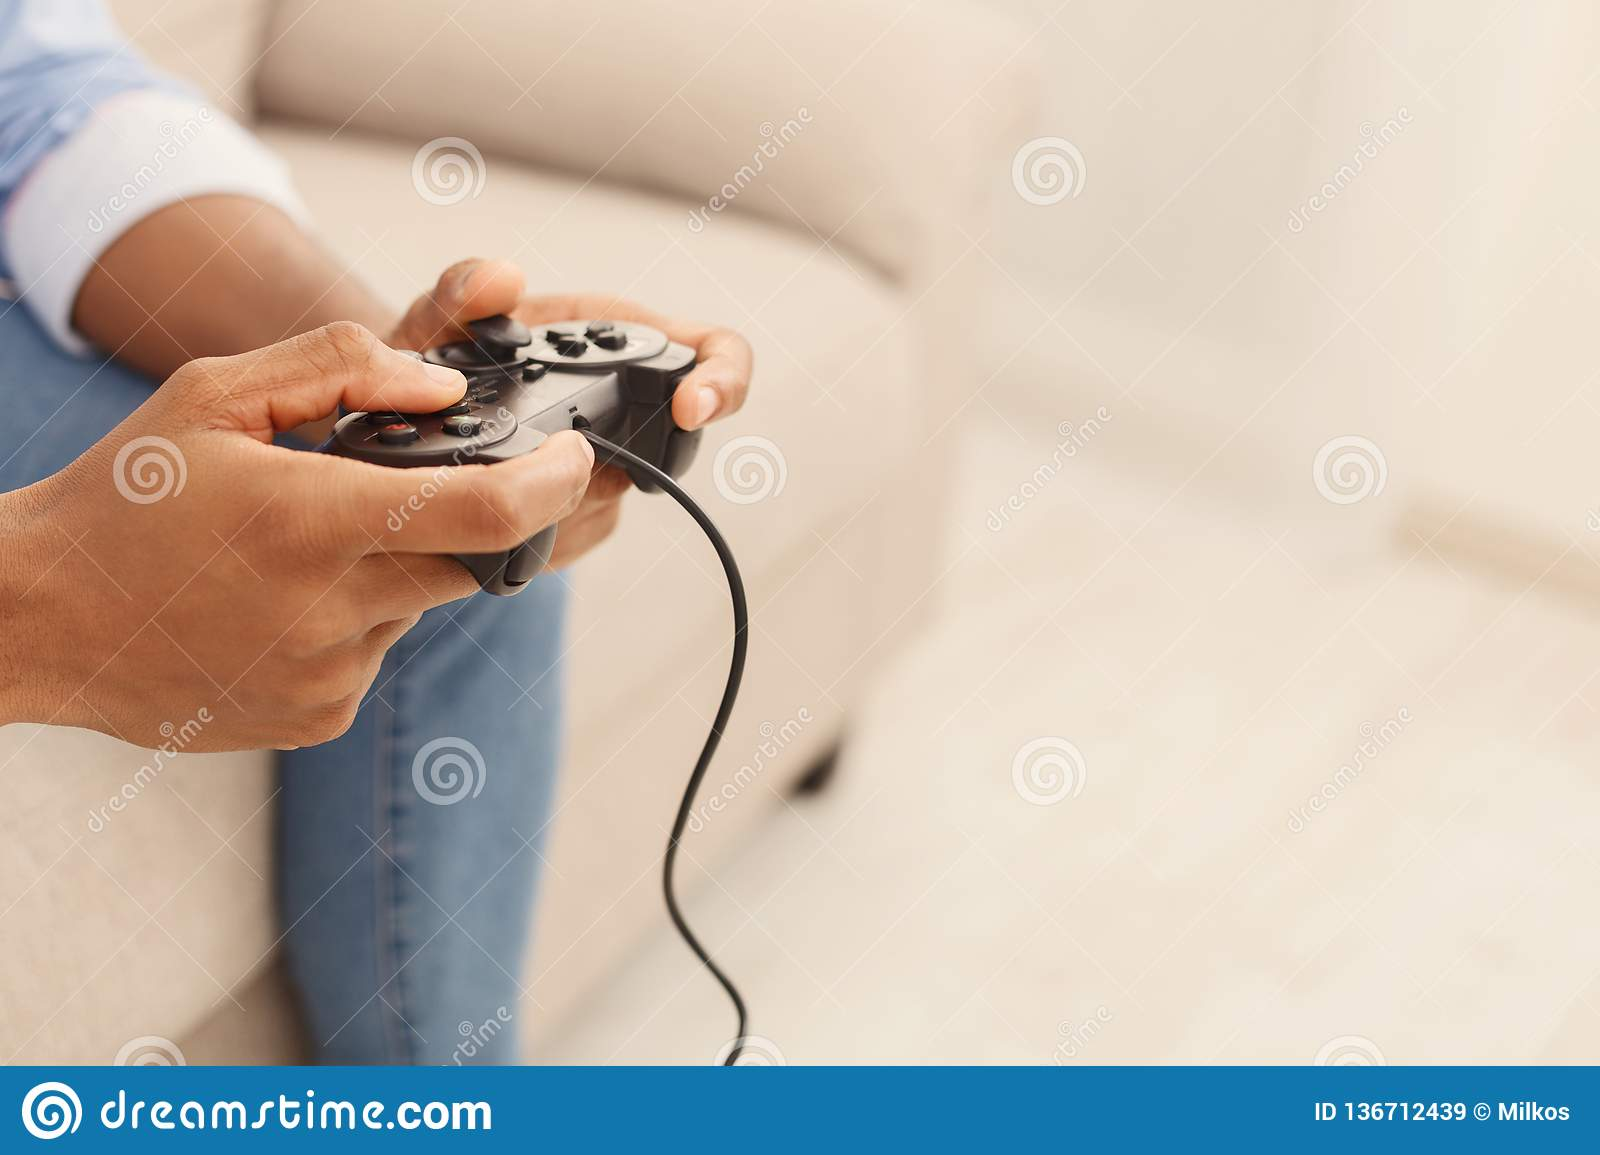 Remarkable Black Man Playing Video Games At Home Stock Image Image Of Games Wiring Digital Resources Minagakbiperorg